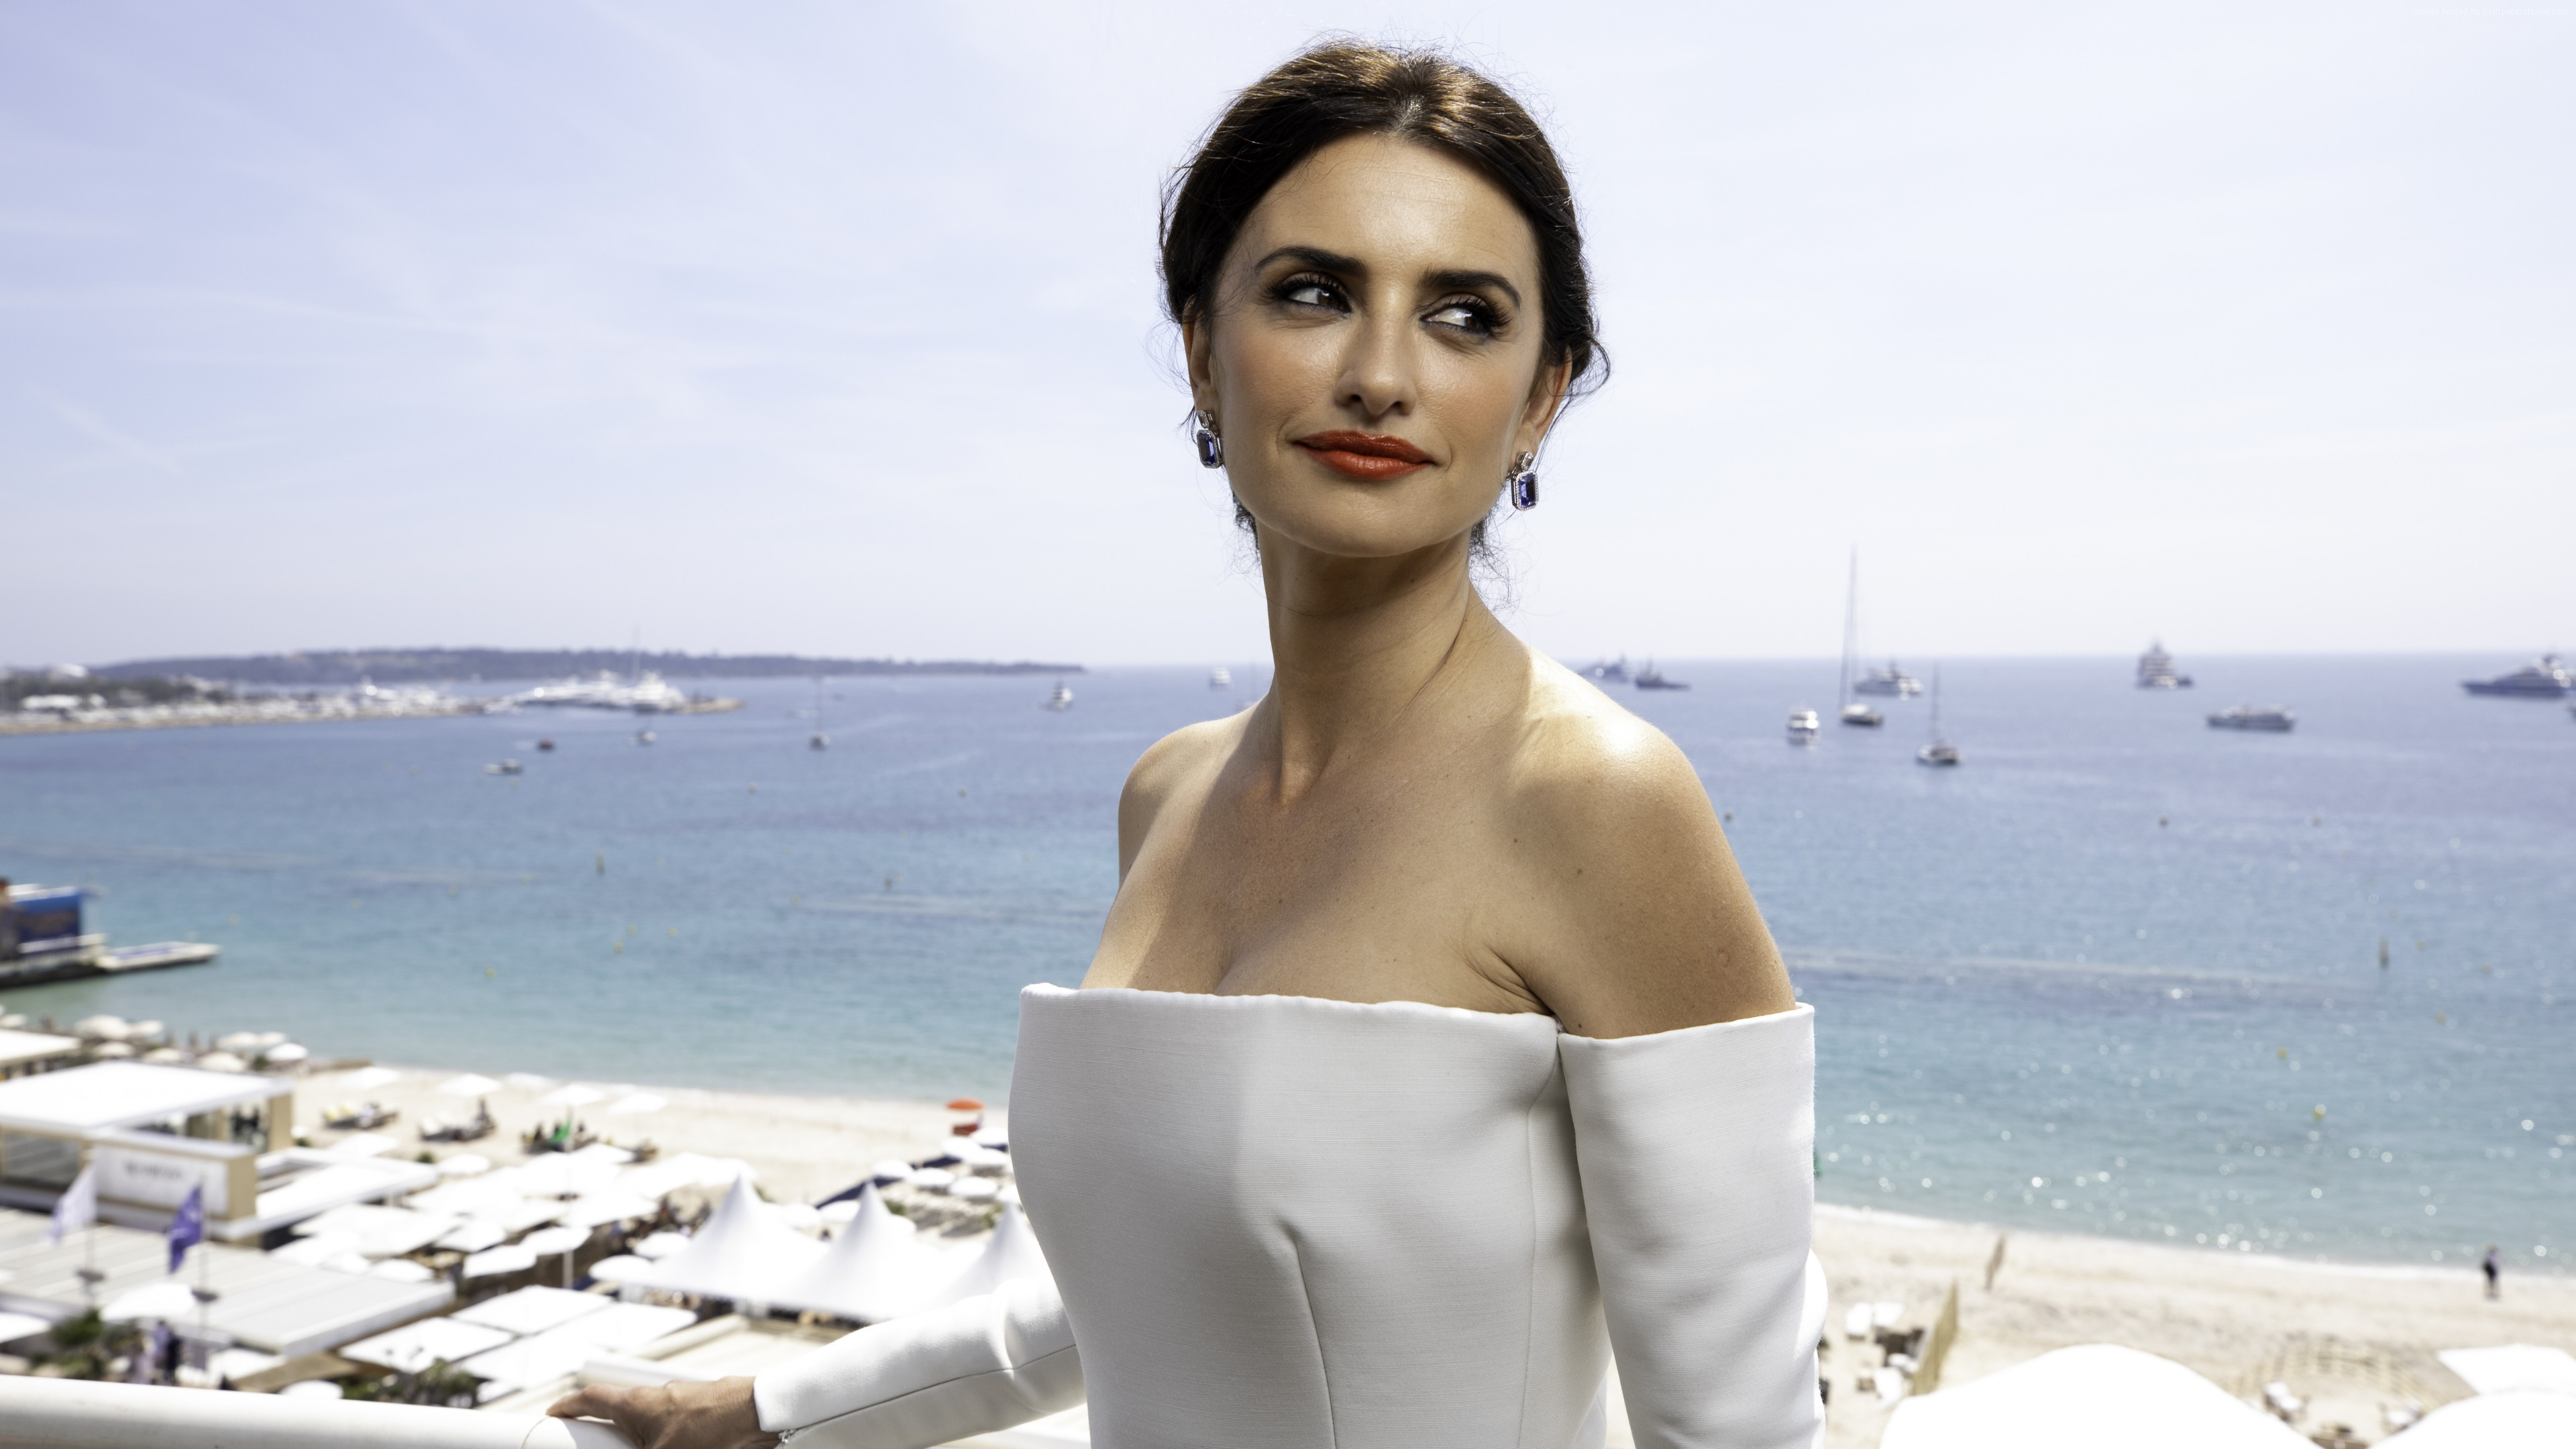 Wallpaper Penelope Cruz, hot, 4K, 6K, Celebrities